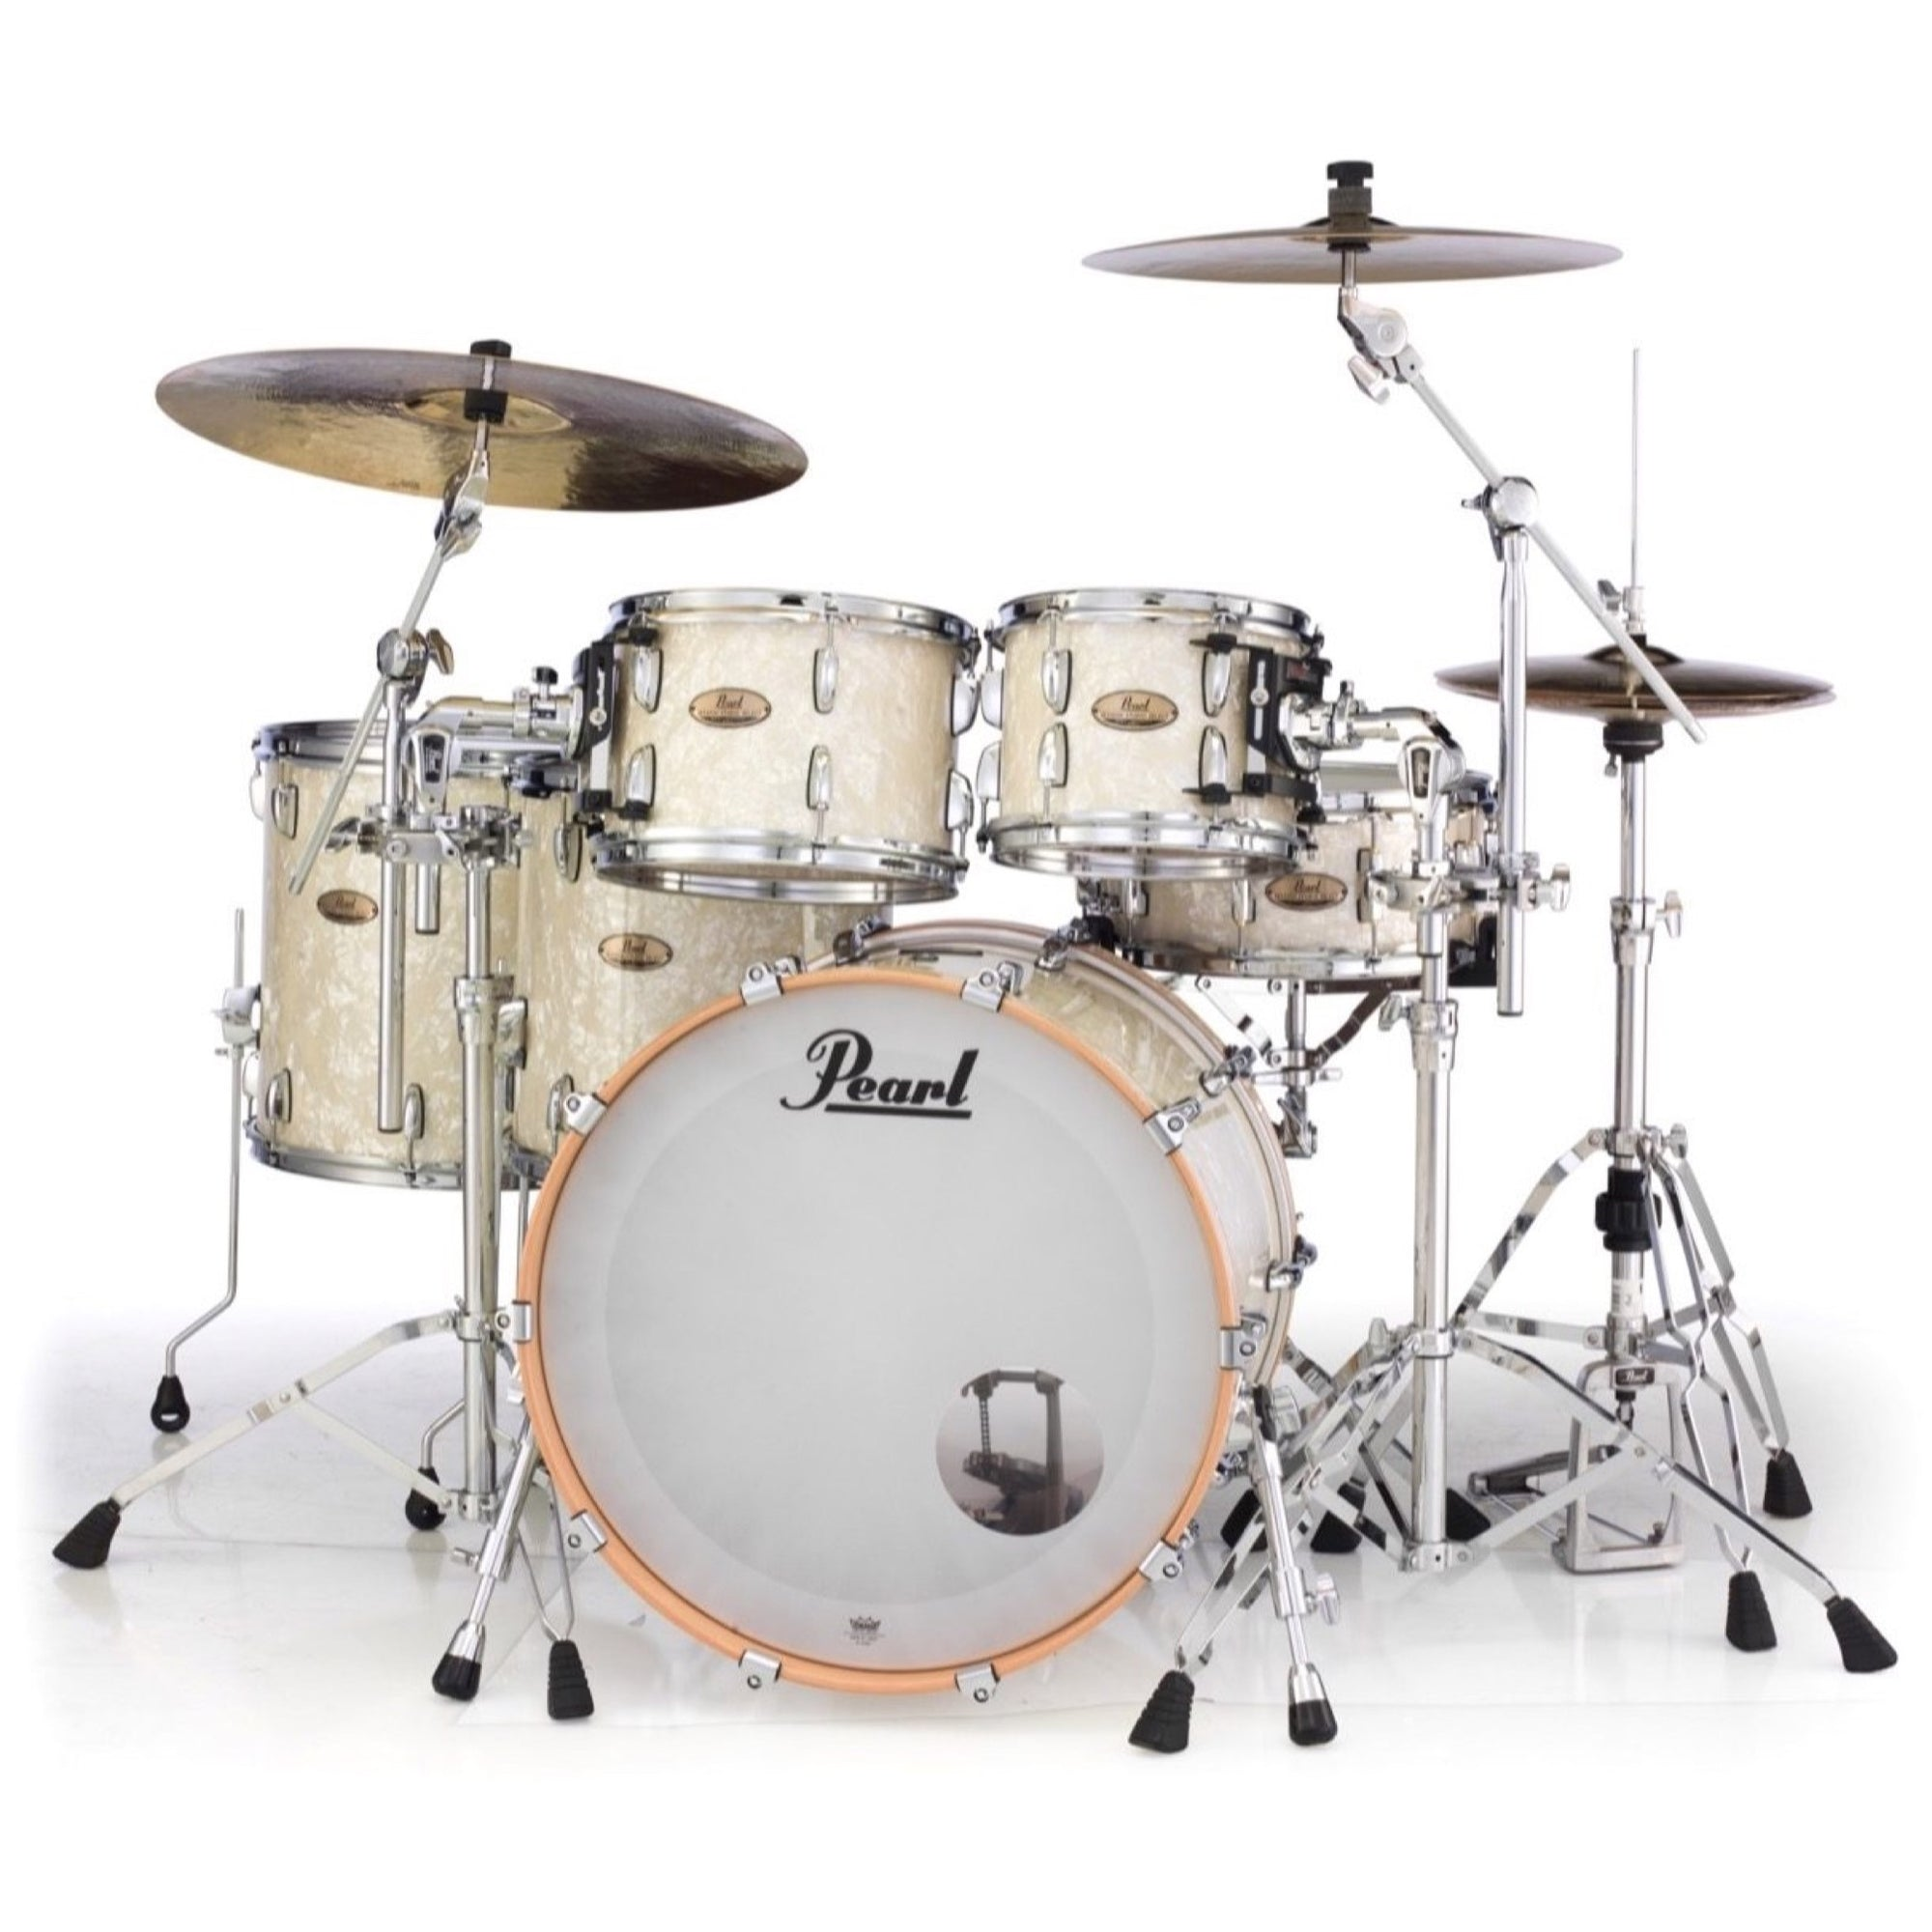 Pearl Session Studio Select Drum Shell Kit, 5-Piece, Nicotine White Marine Pearl